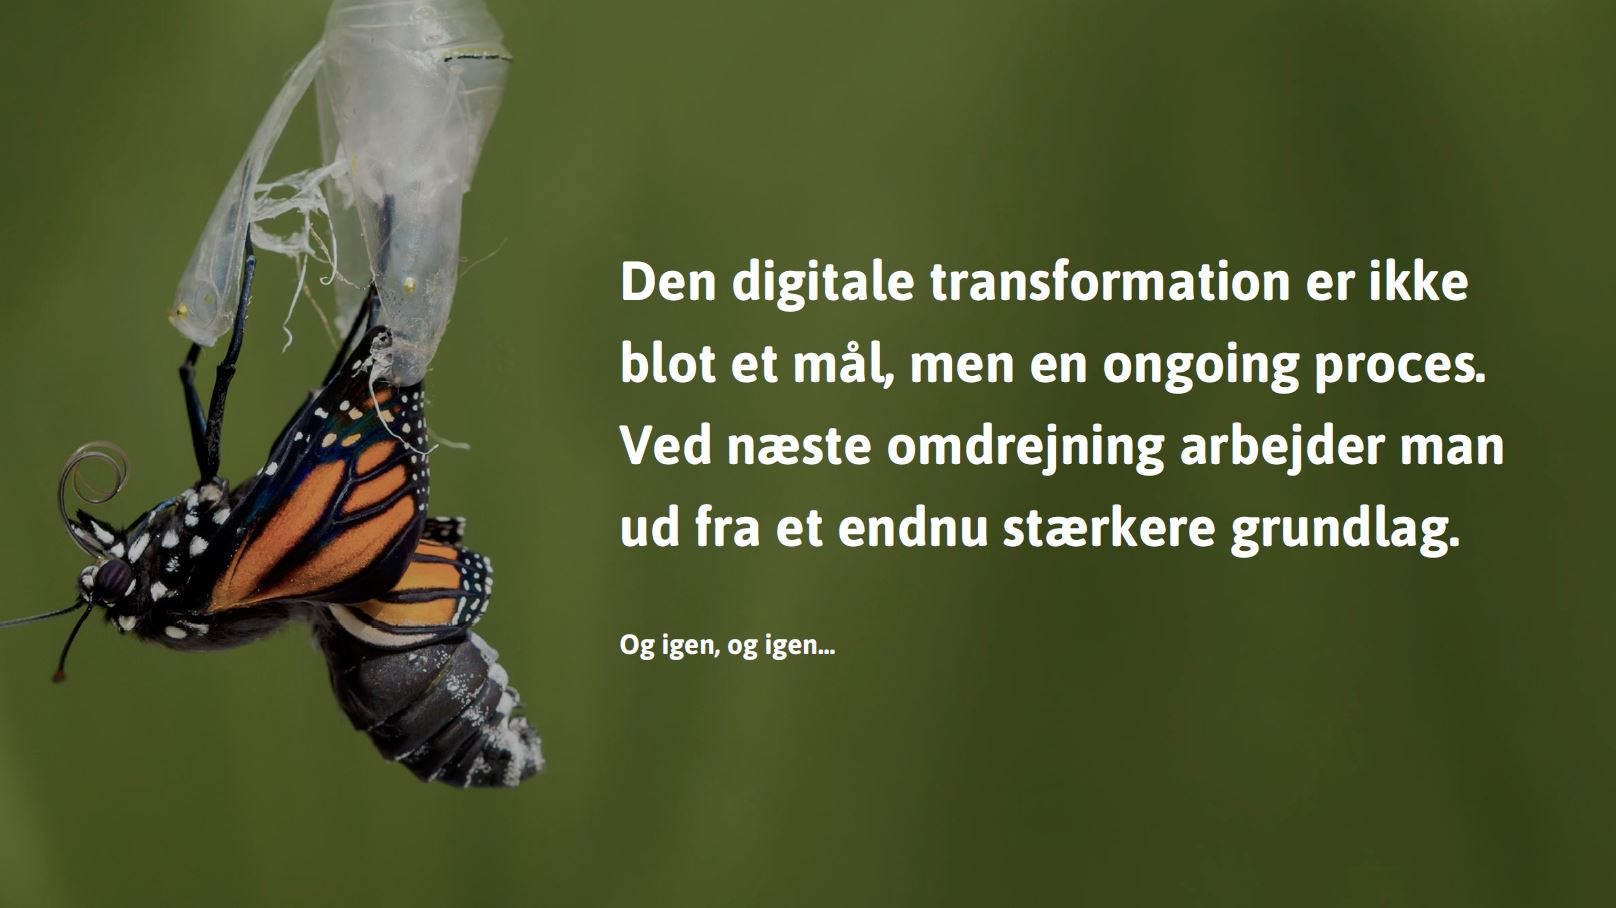 digitaltransformationscyklus